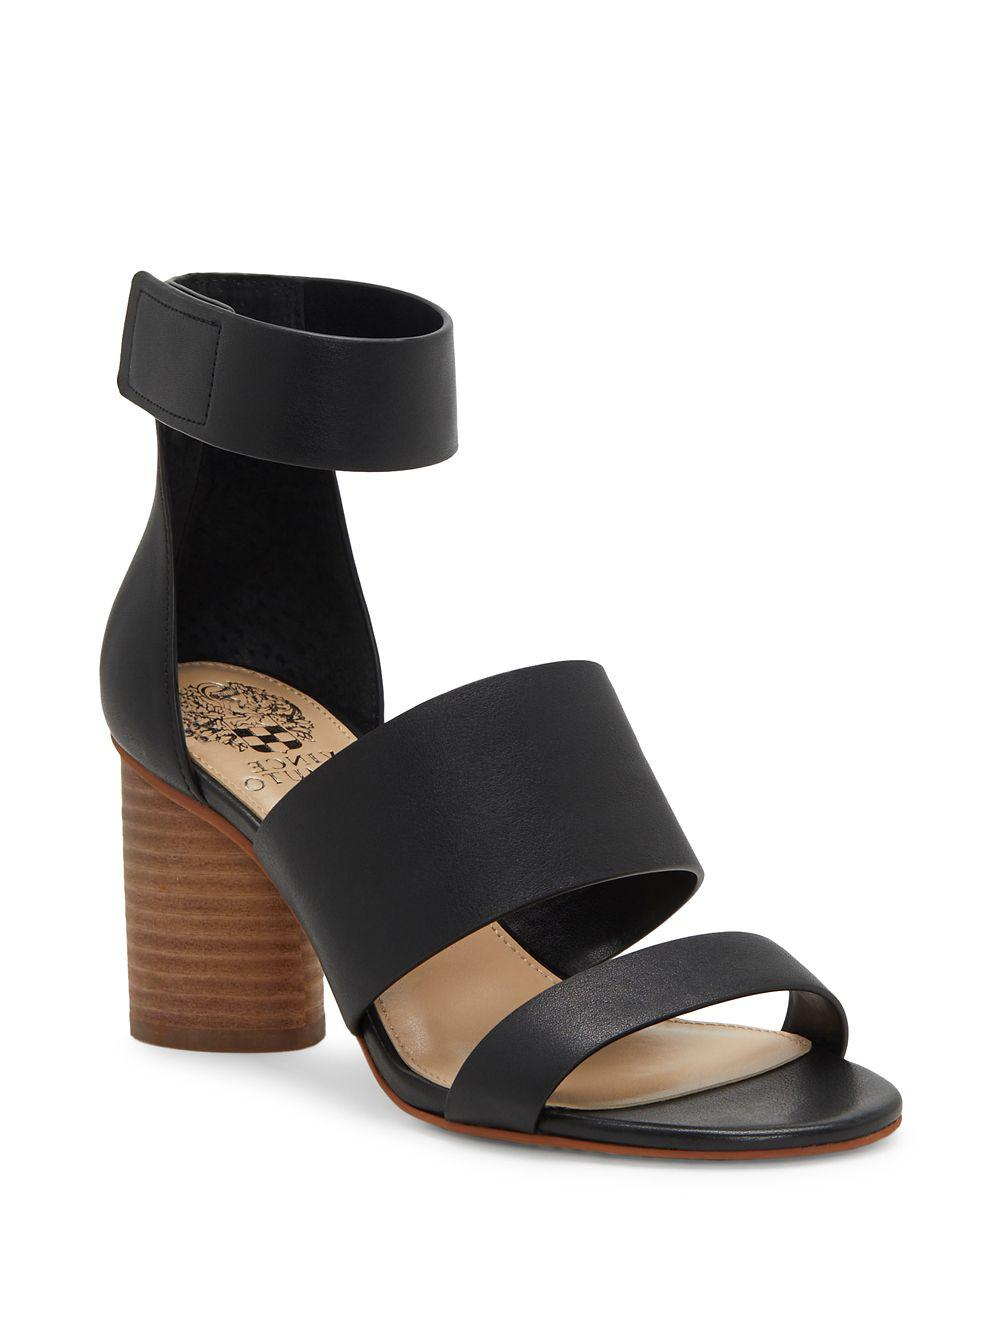 Vince Camuto Junette Leather Block Heel Sandals 6GFV4NNDF4